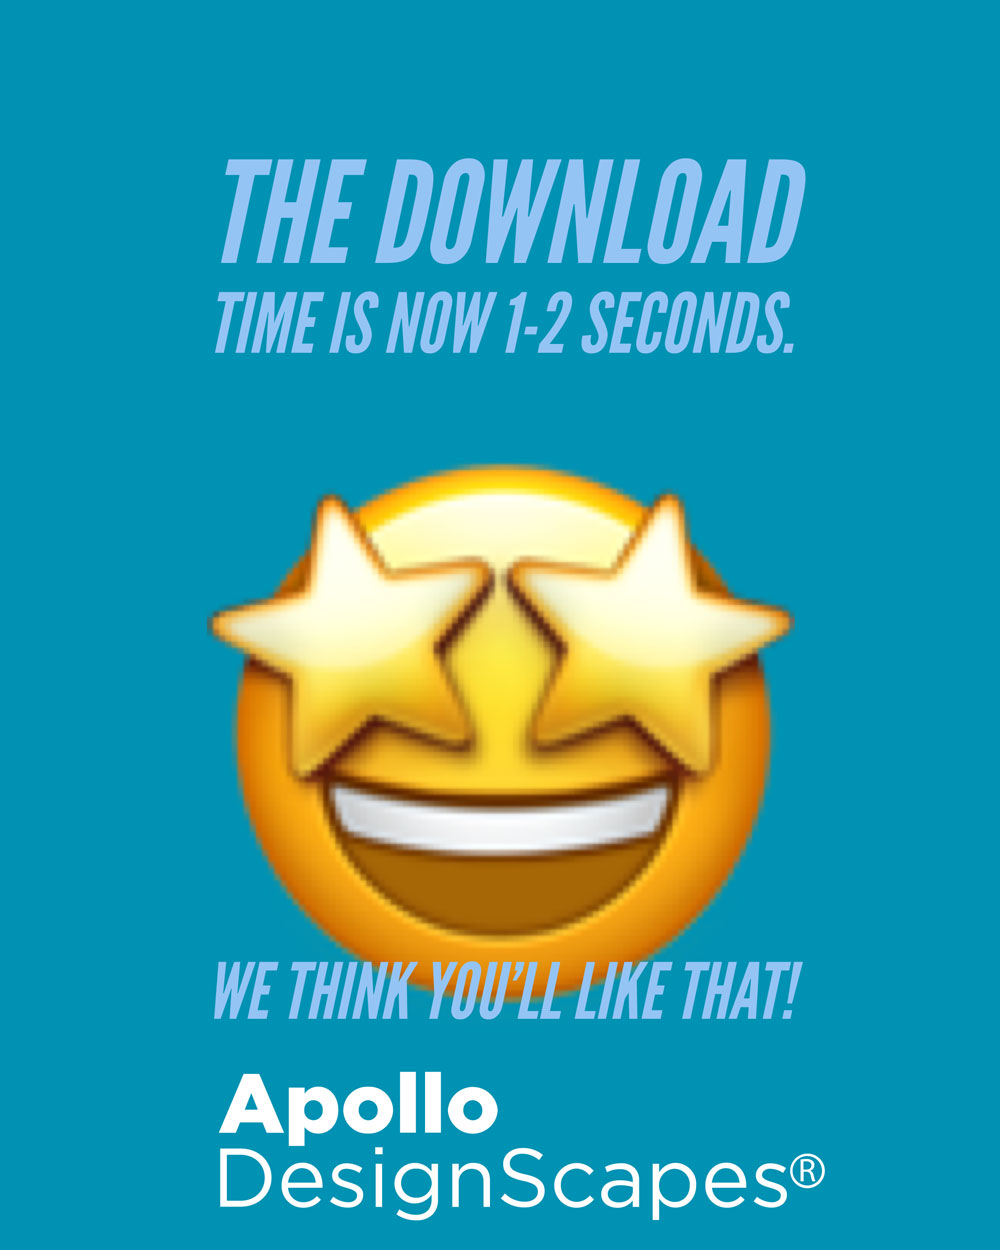 Download Time is now 1-2 seconds.